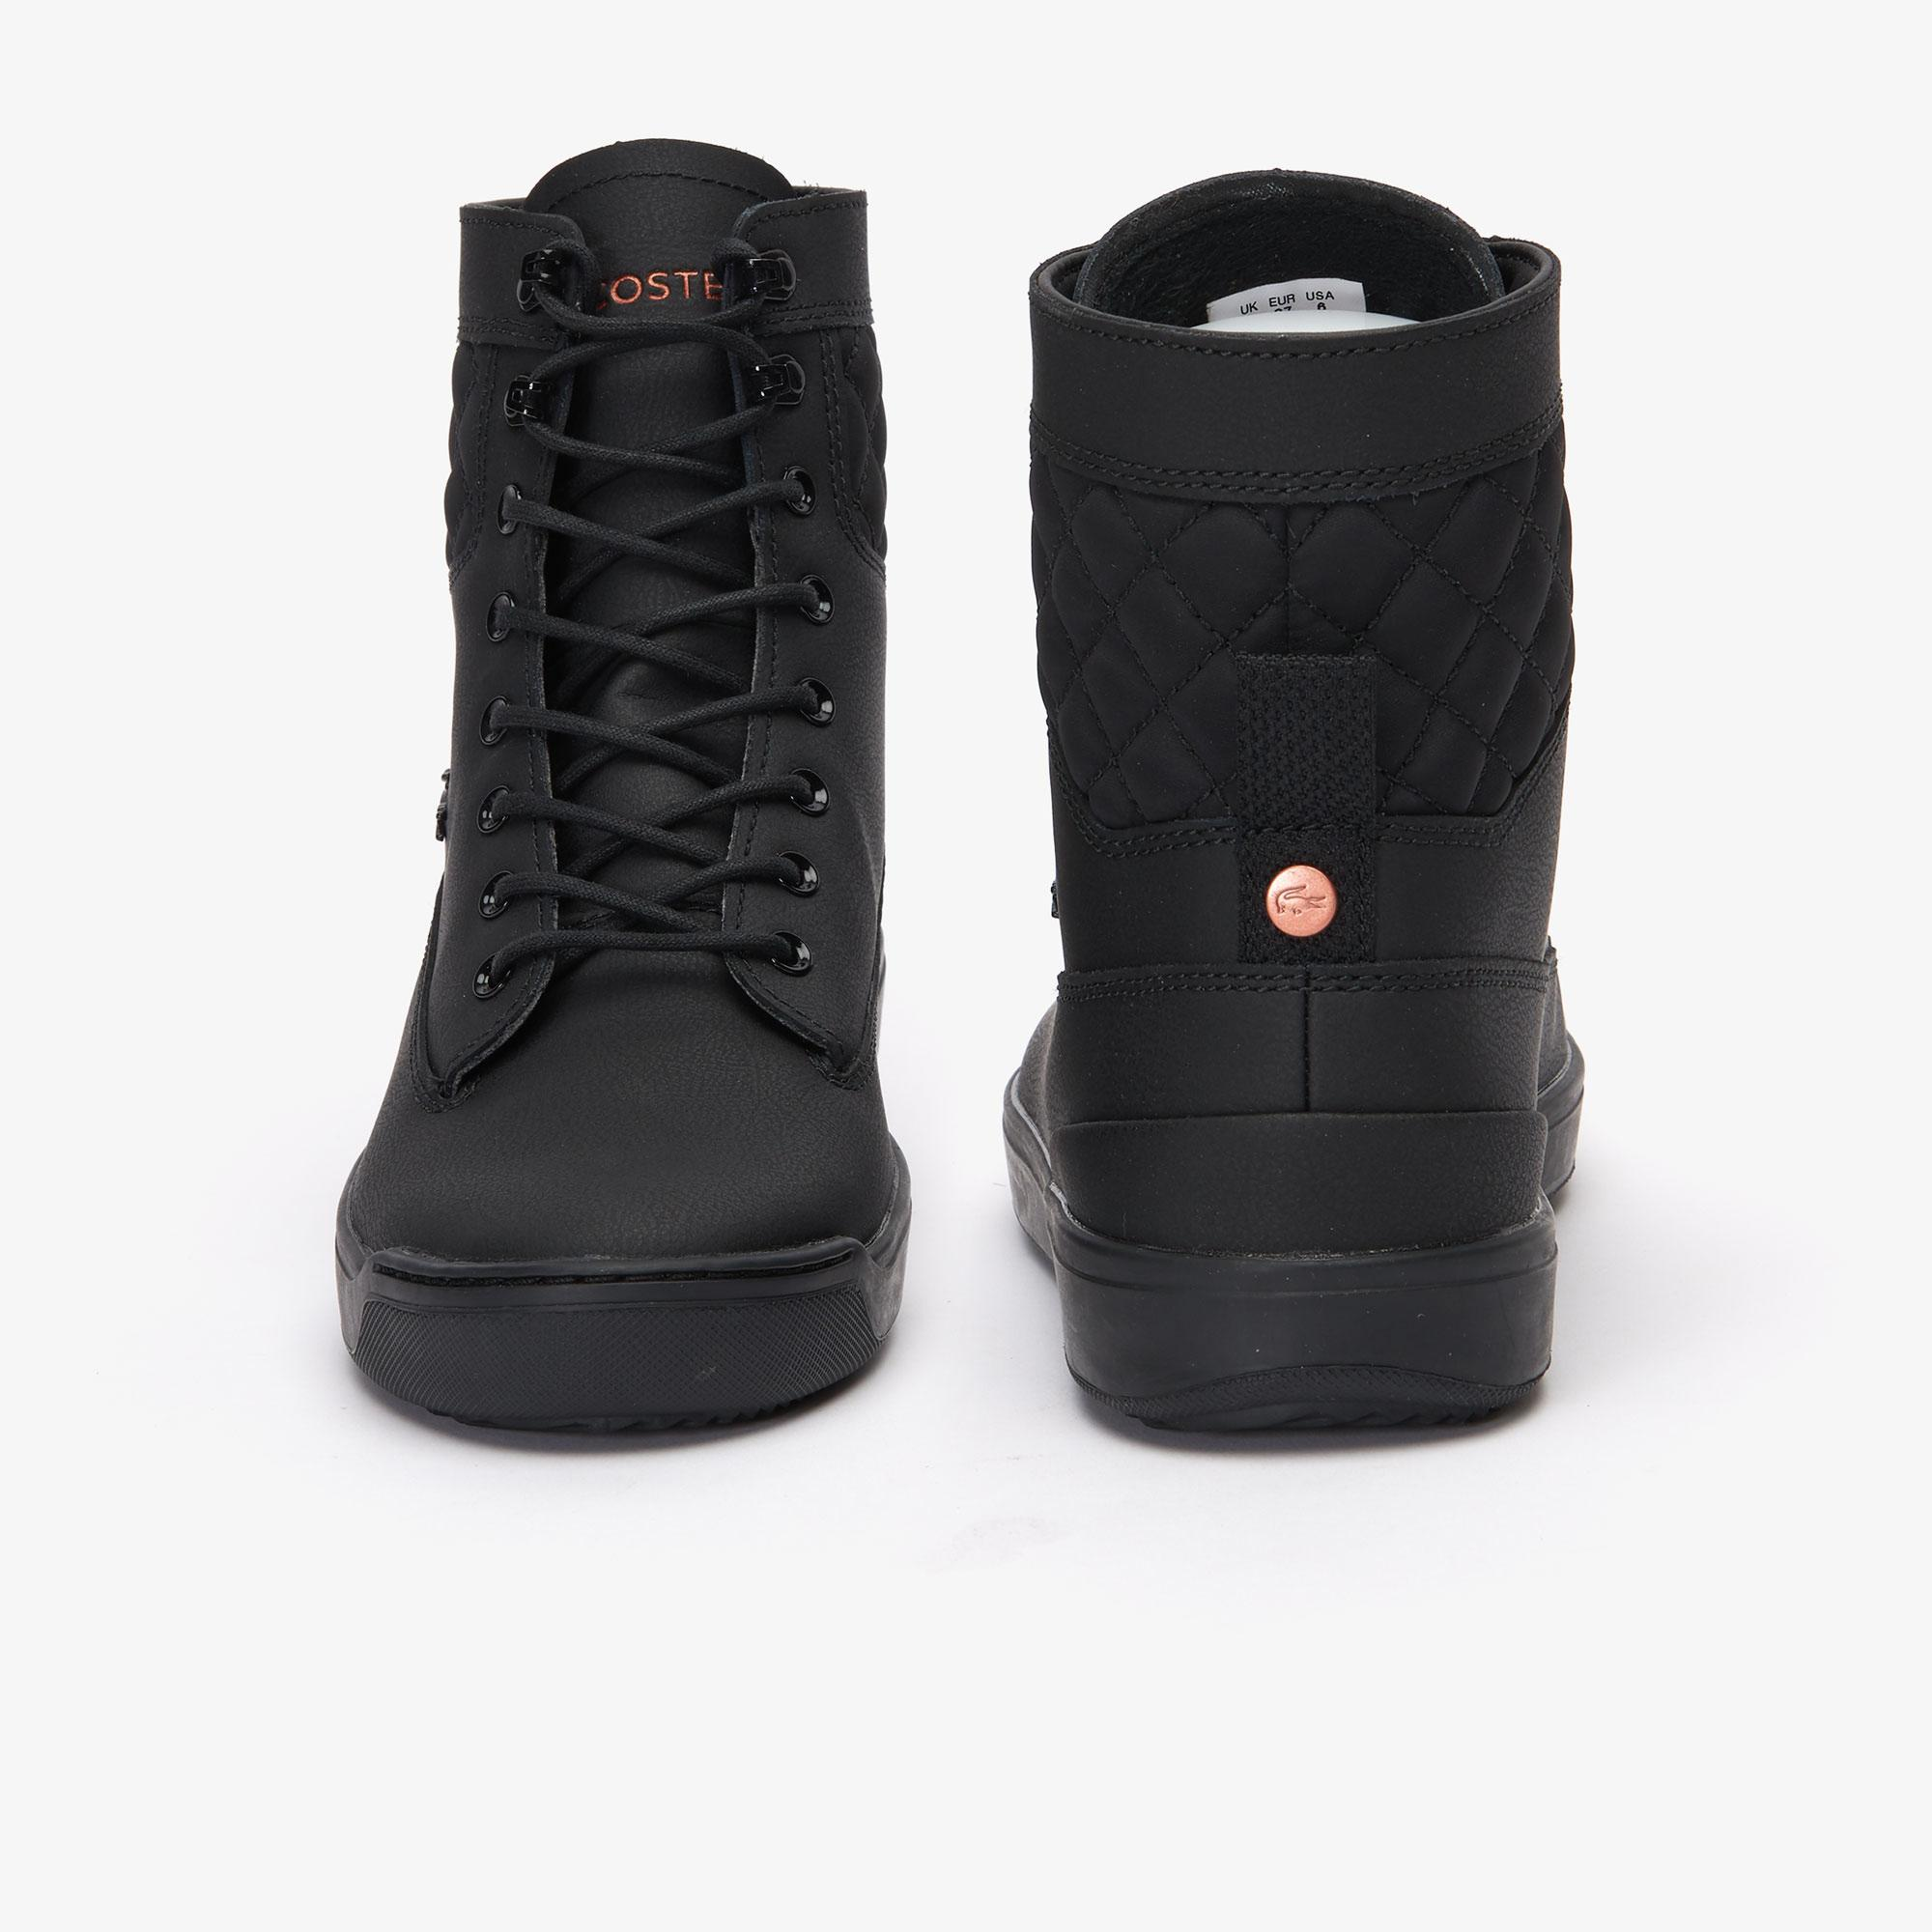 Lacoste Women's Explorateur Hi 319 1 Boots